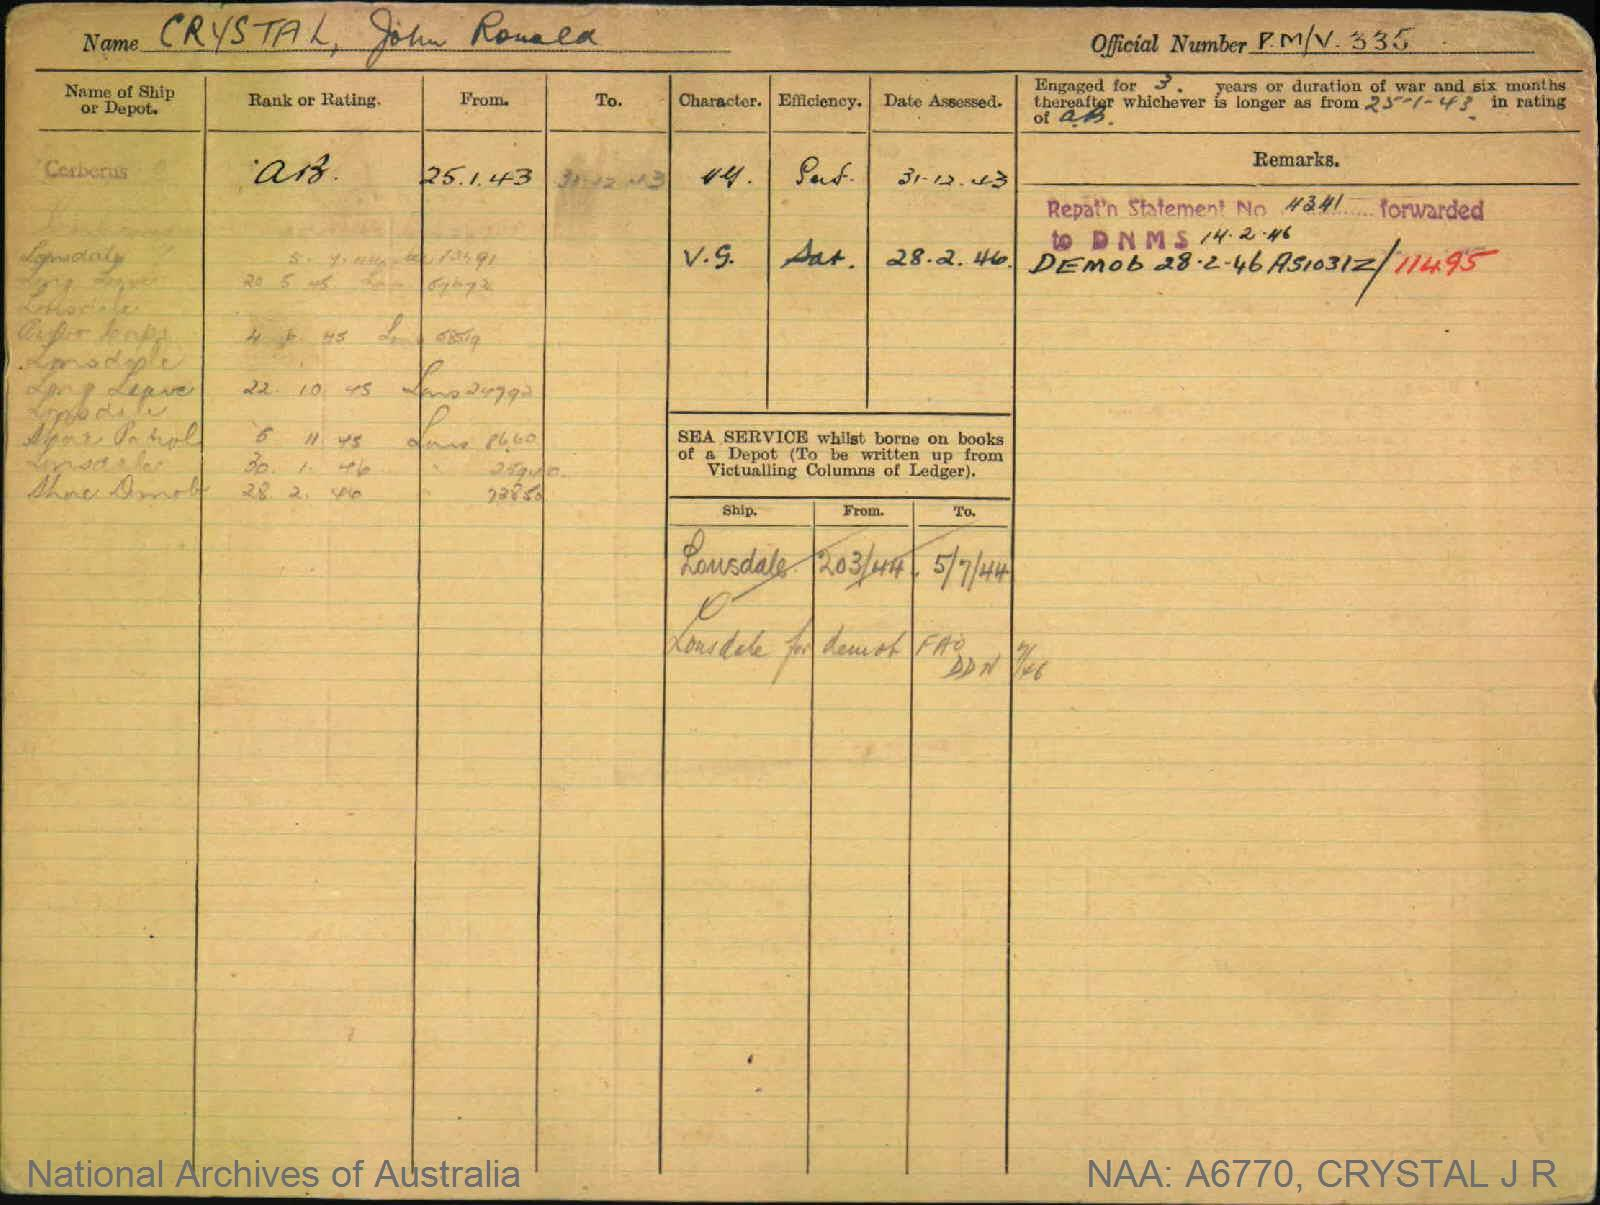 CRYSTAL JOHN RONALD : Service Number - PM/V335 : Date of birth - 20 Apr 1904 : Place of birth - ALBERT PARK VIC : Place of enlistment - PORT MELBOURNE VIC : Next of Kin - CRYSTAL FRANCIS